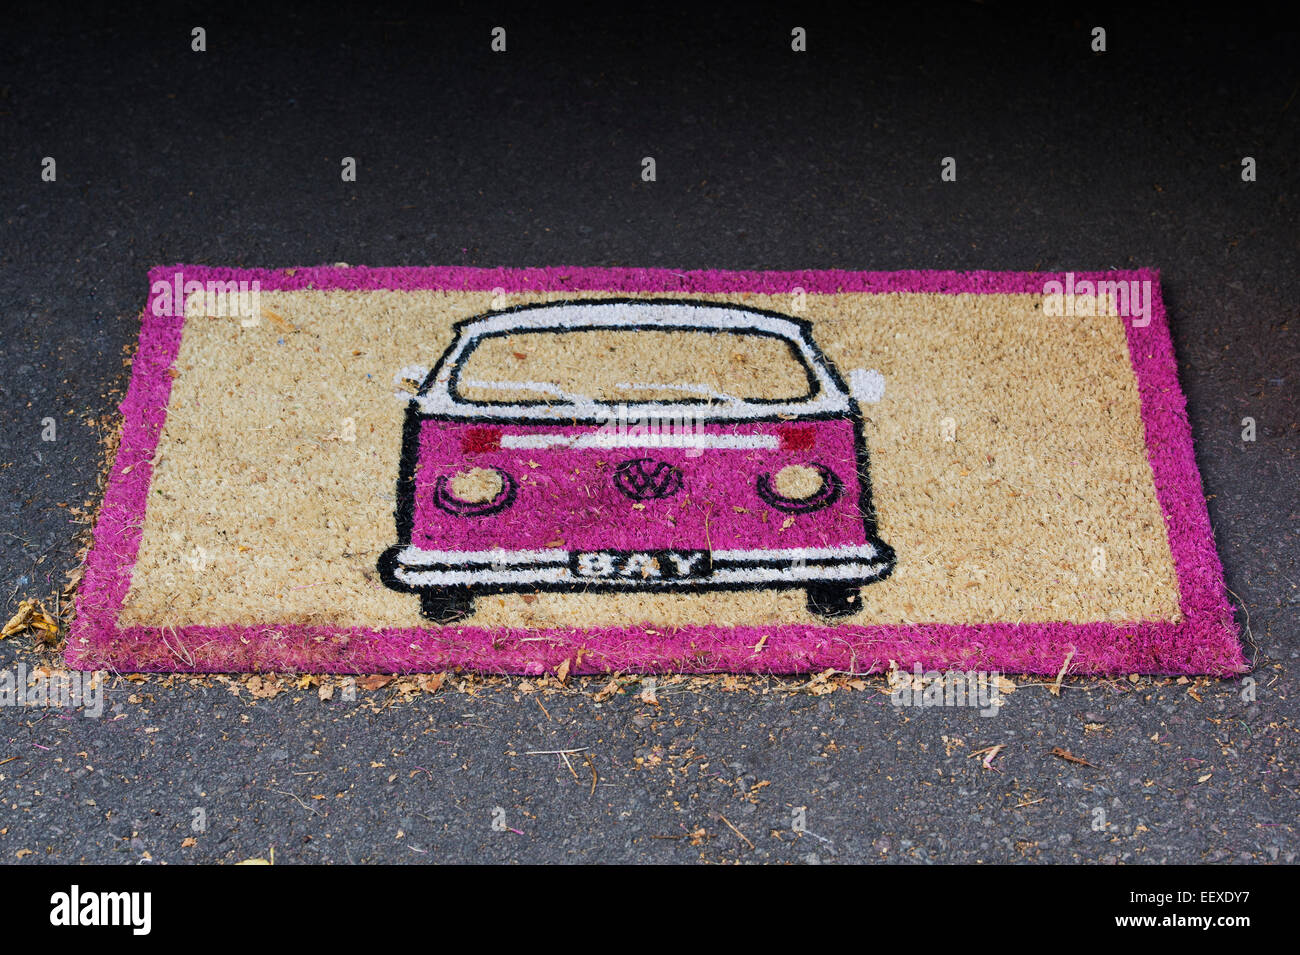 VW campervan doormat - Stock Image